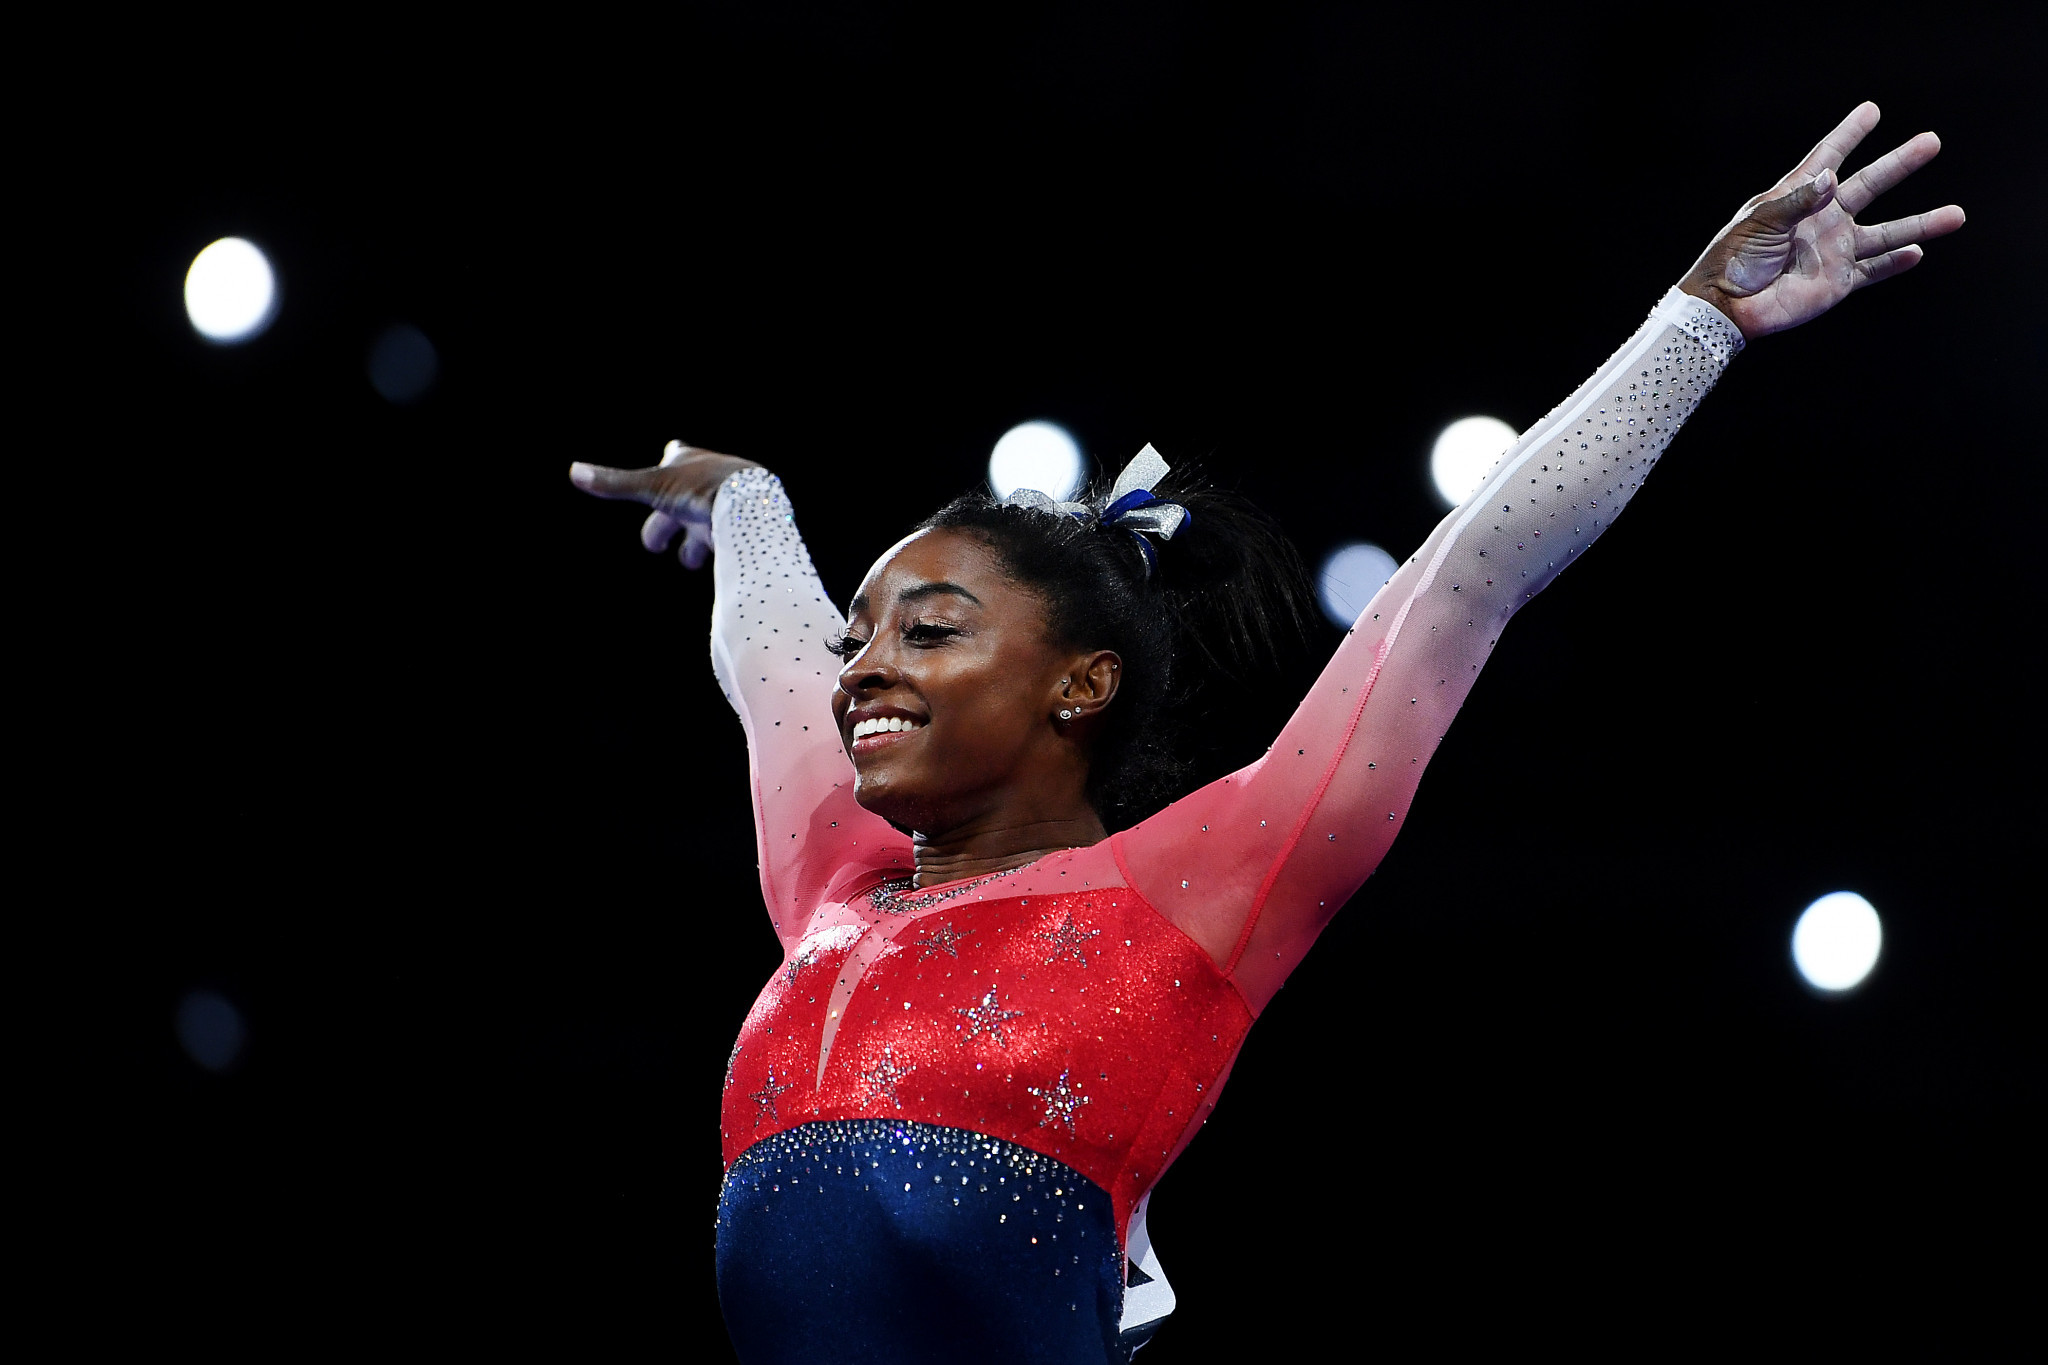 Biles claims record 21st World Championship medal as US triumph